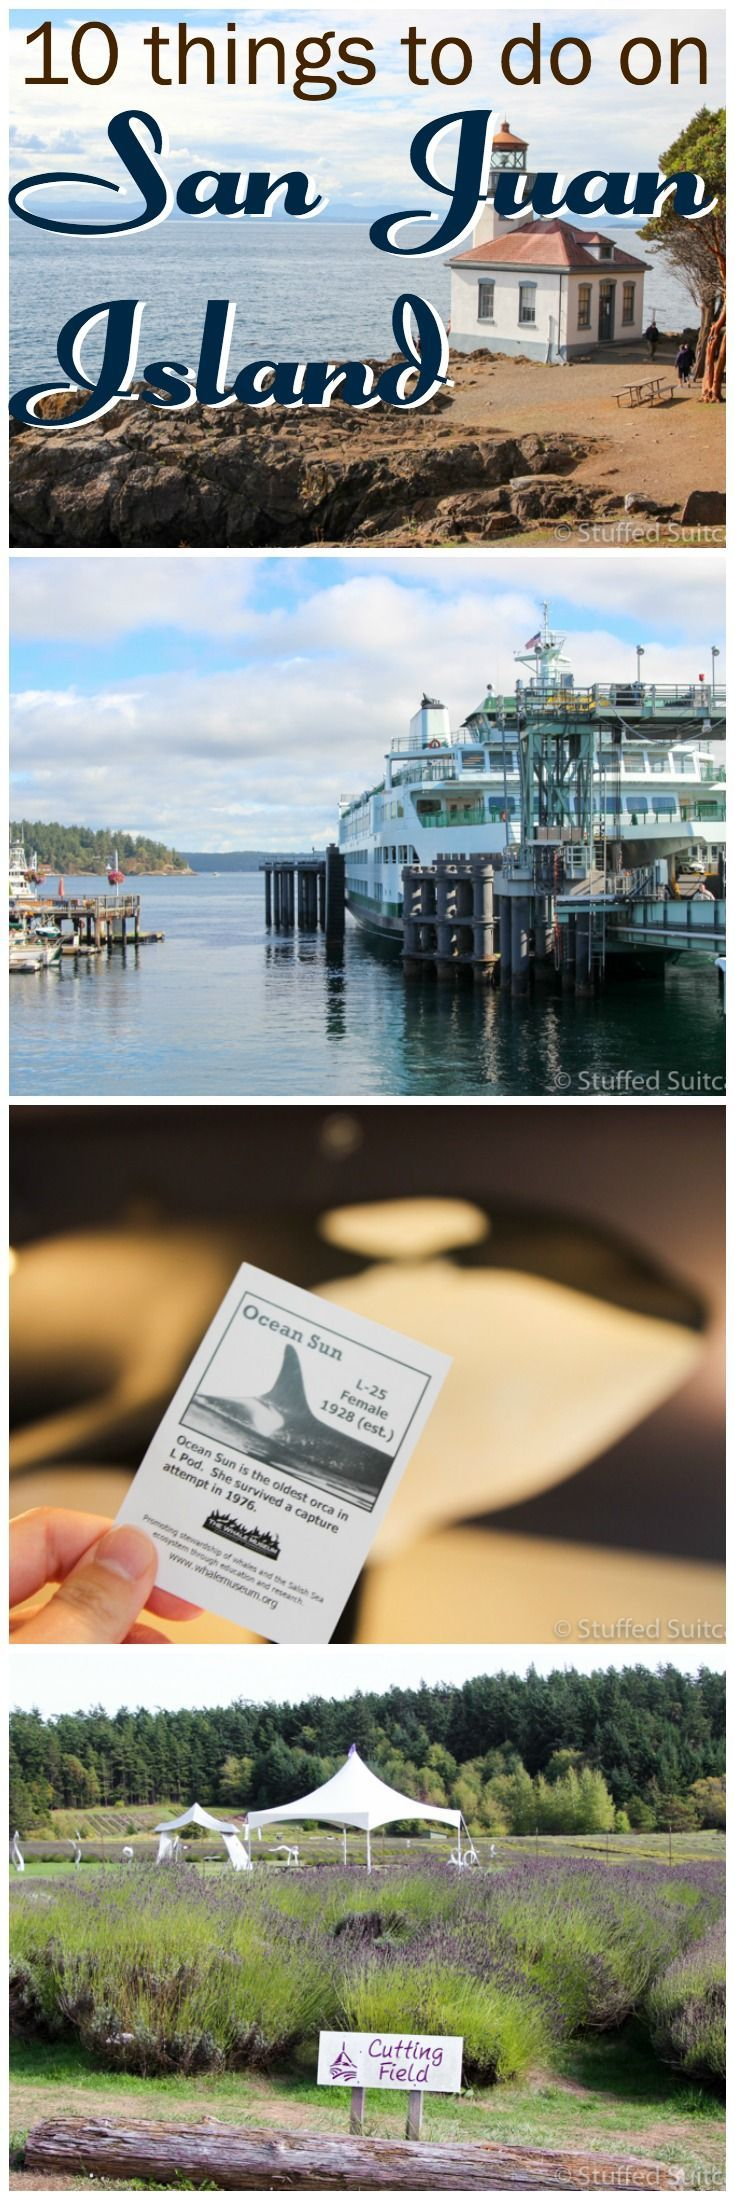 If you're taking a vacation to the west coast, be sure to plan a visit to the islands - San Juan Island, Washington is charming and full of activities perfect for family travel or adventure travel.